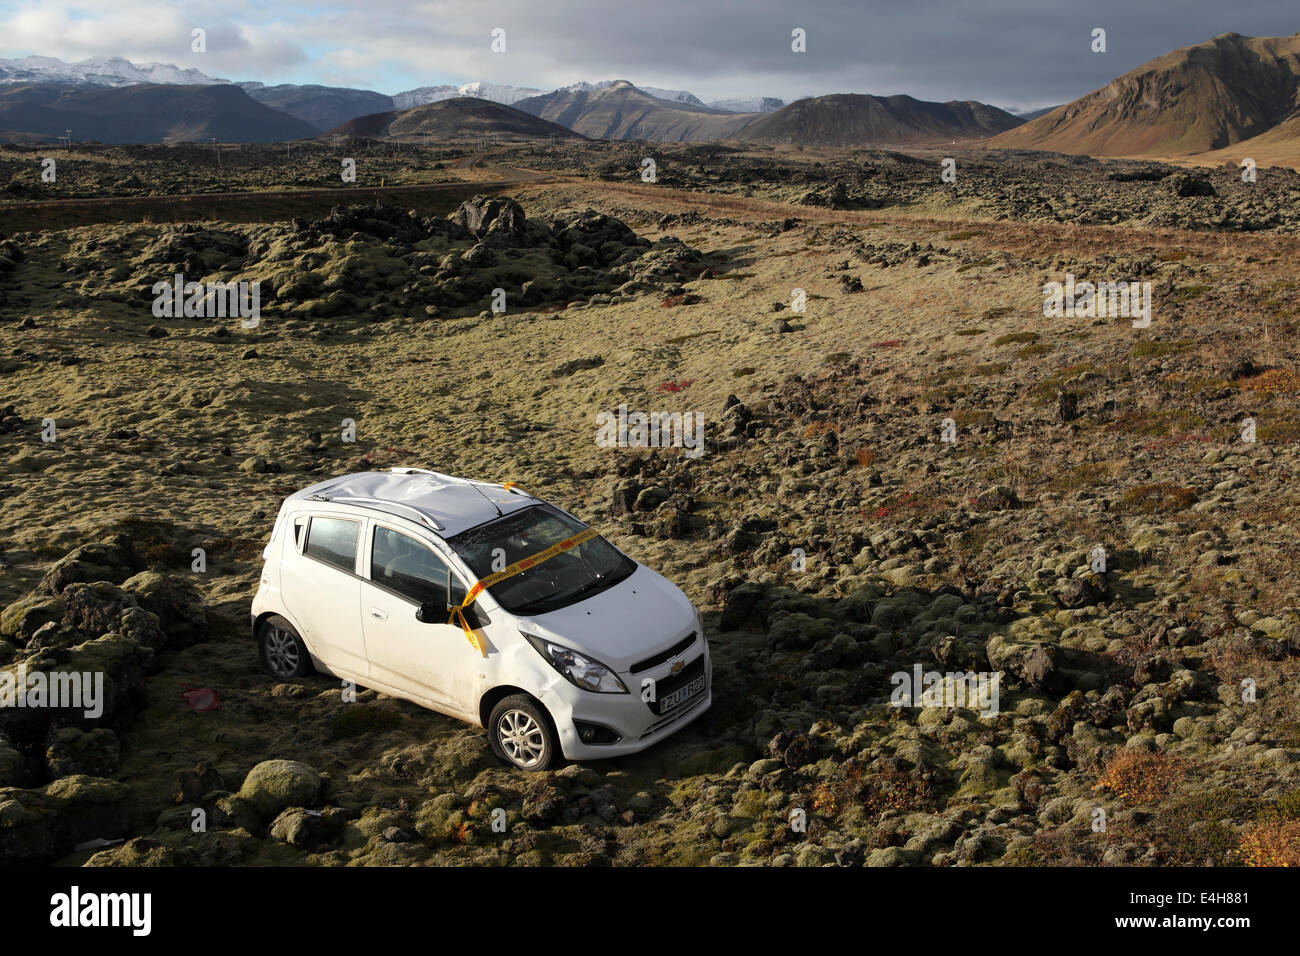 A crashed and abandoned car on the edge of the lava field at the Beserkjaravn near Bjarnahofn, Iceland. - Stock Image